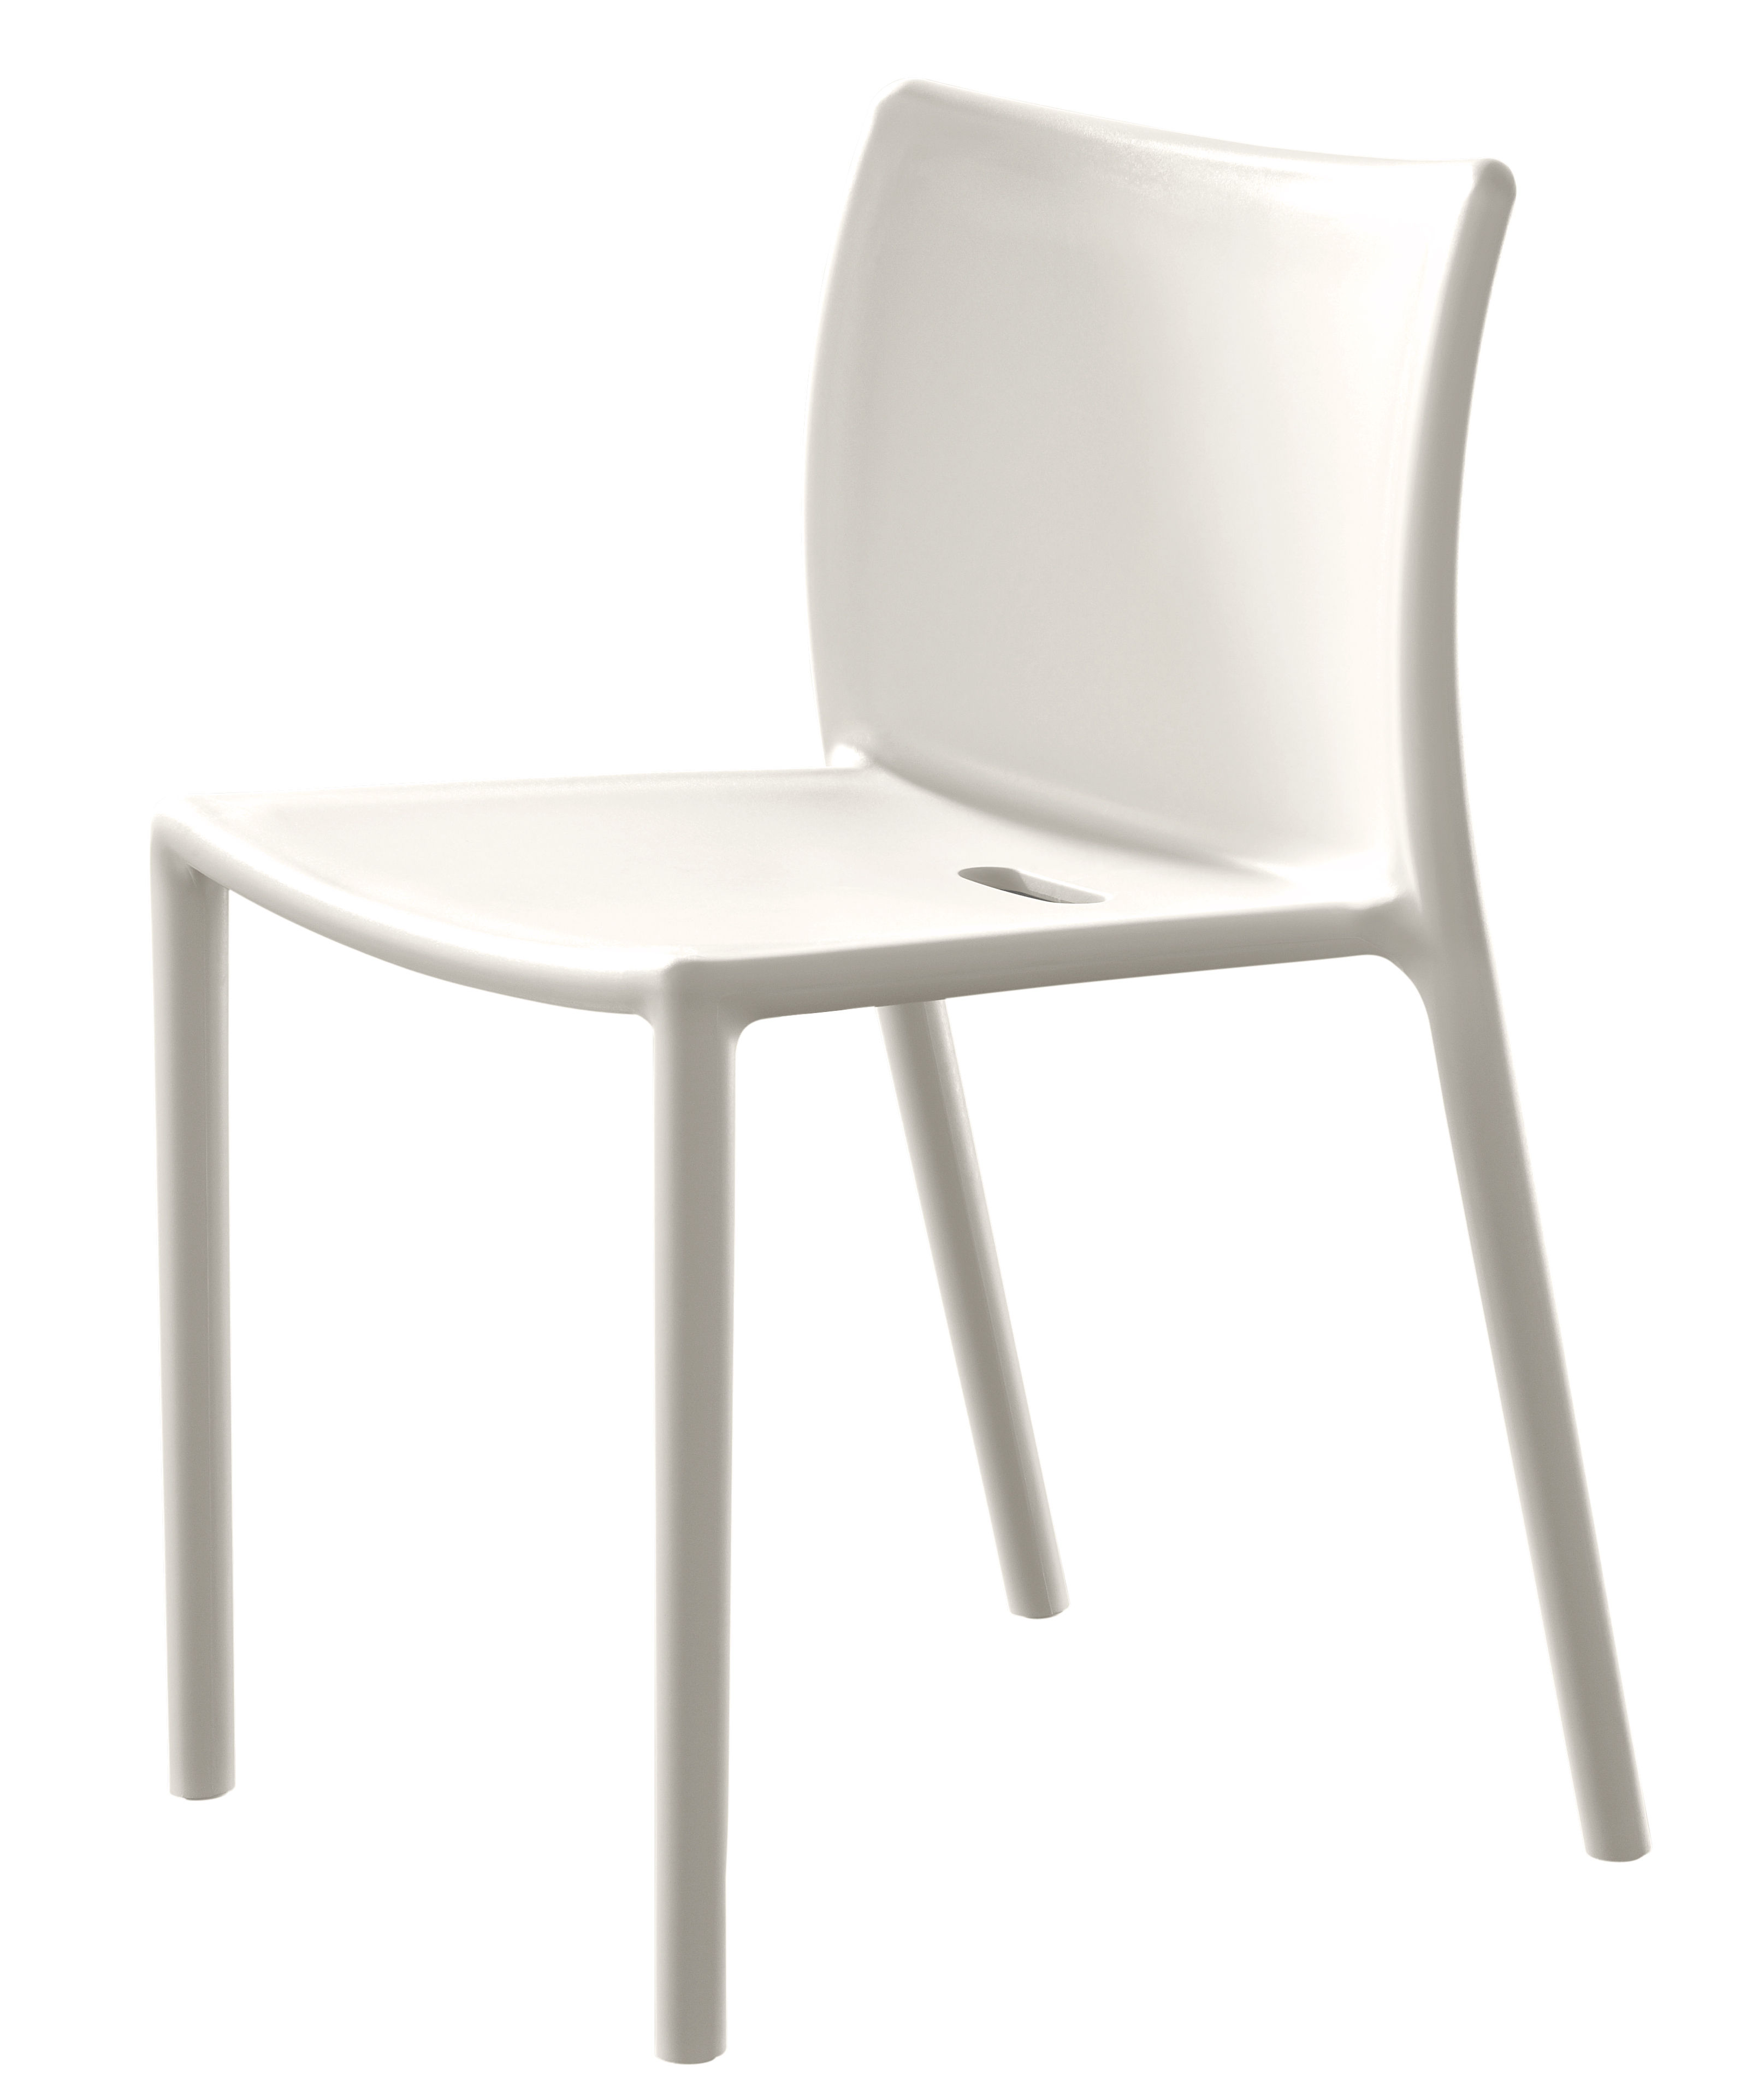 Air chair stacking chair polypropylene white by magis for Chaise salle a manger but